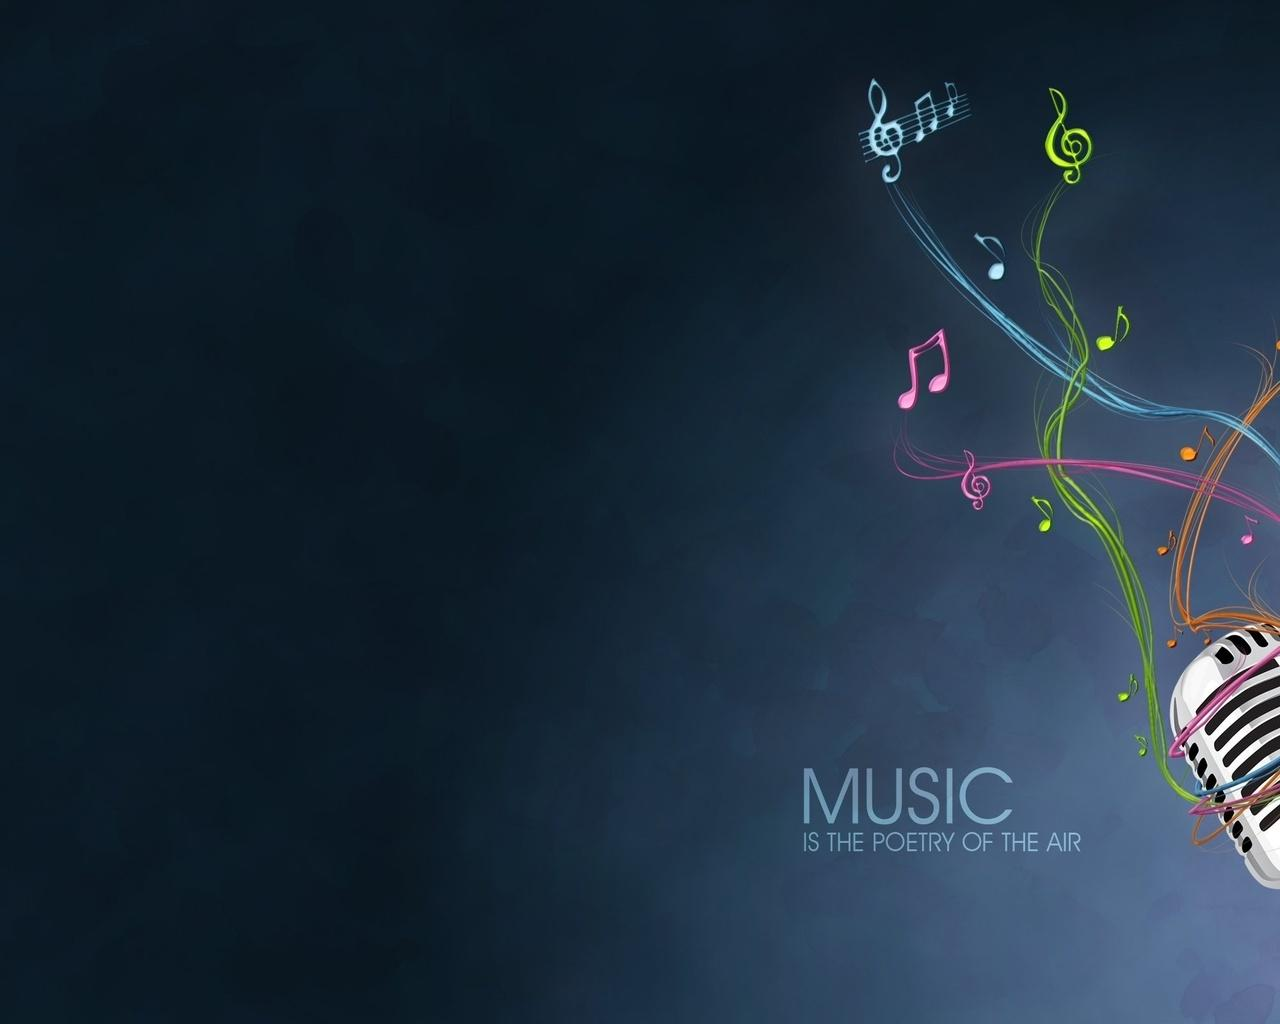 Music images Music Wallpaper HD wallpaper and background photos ...